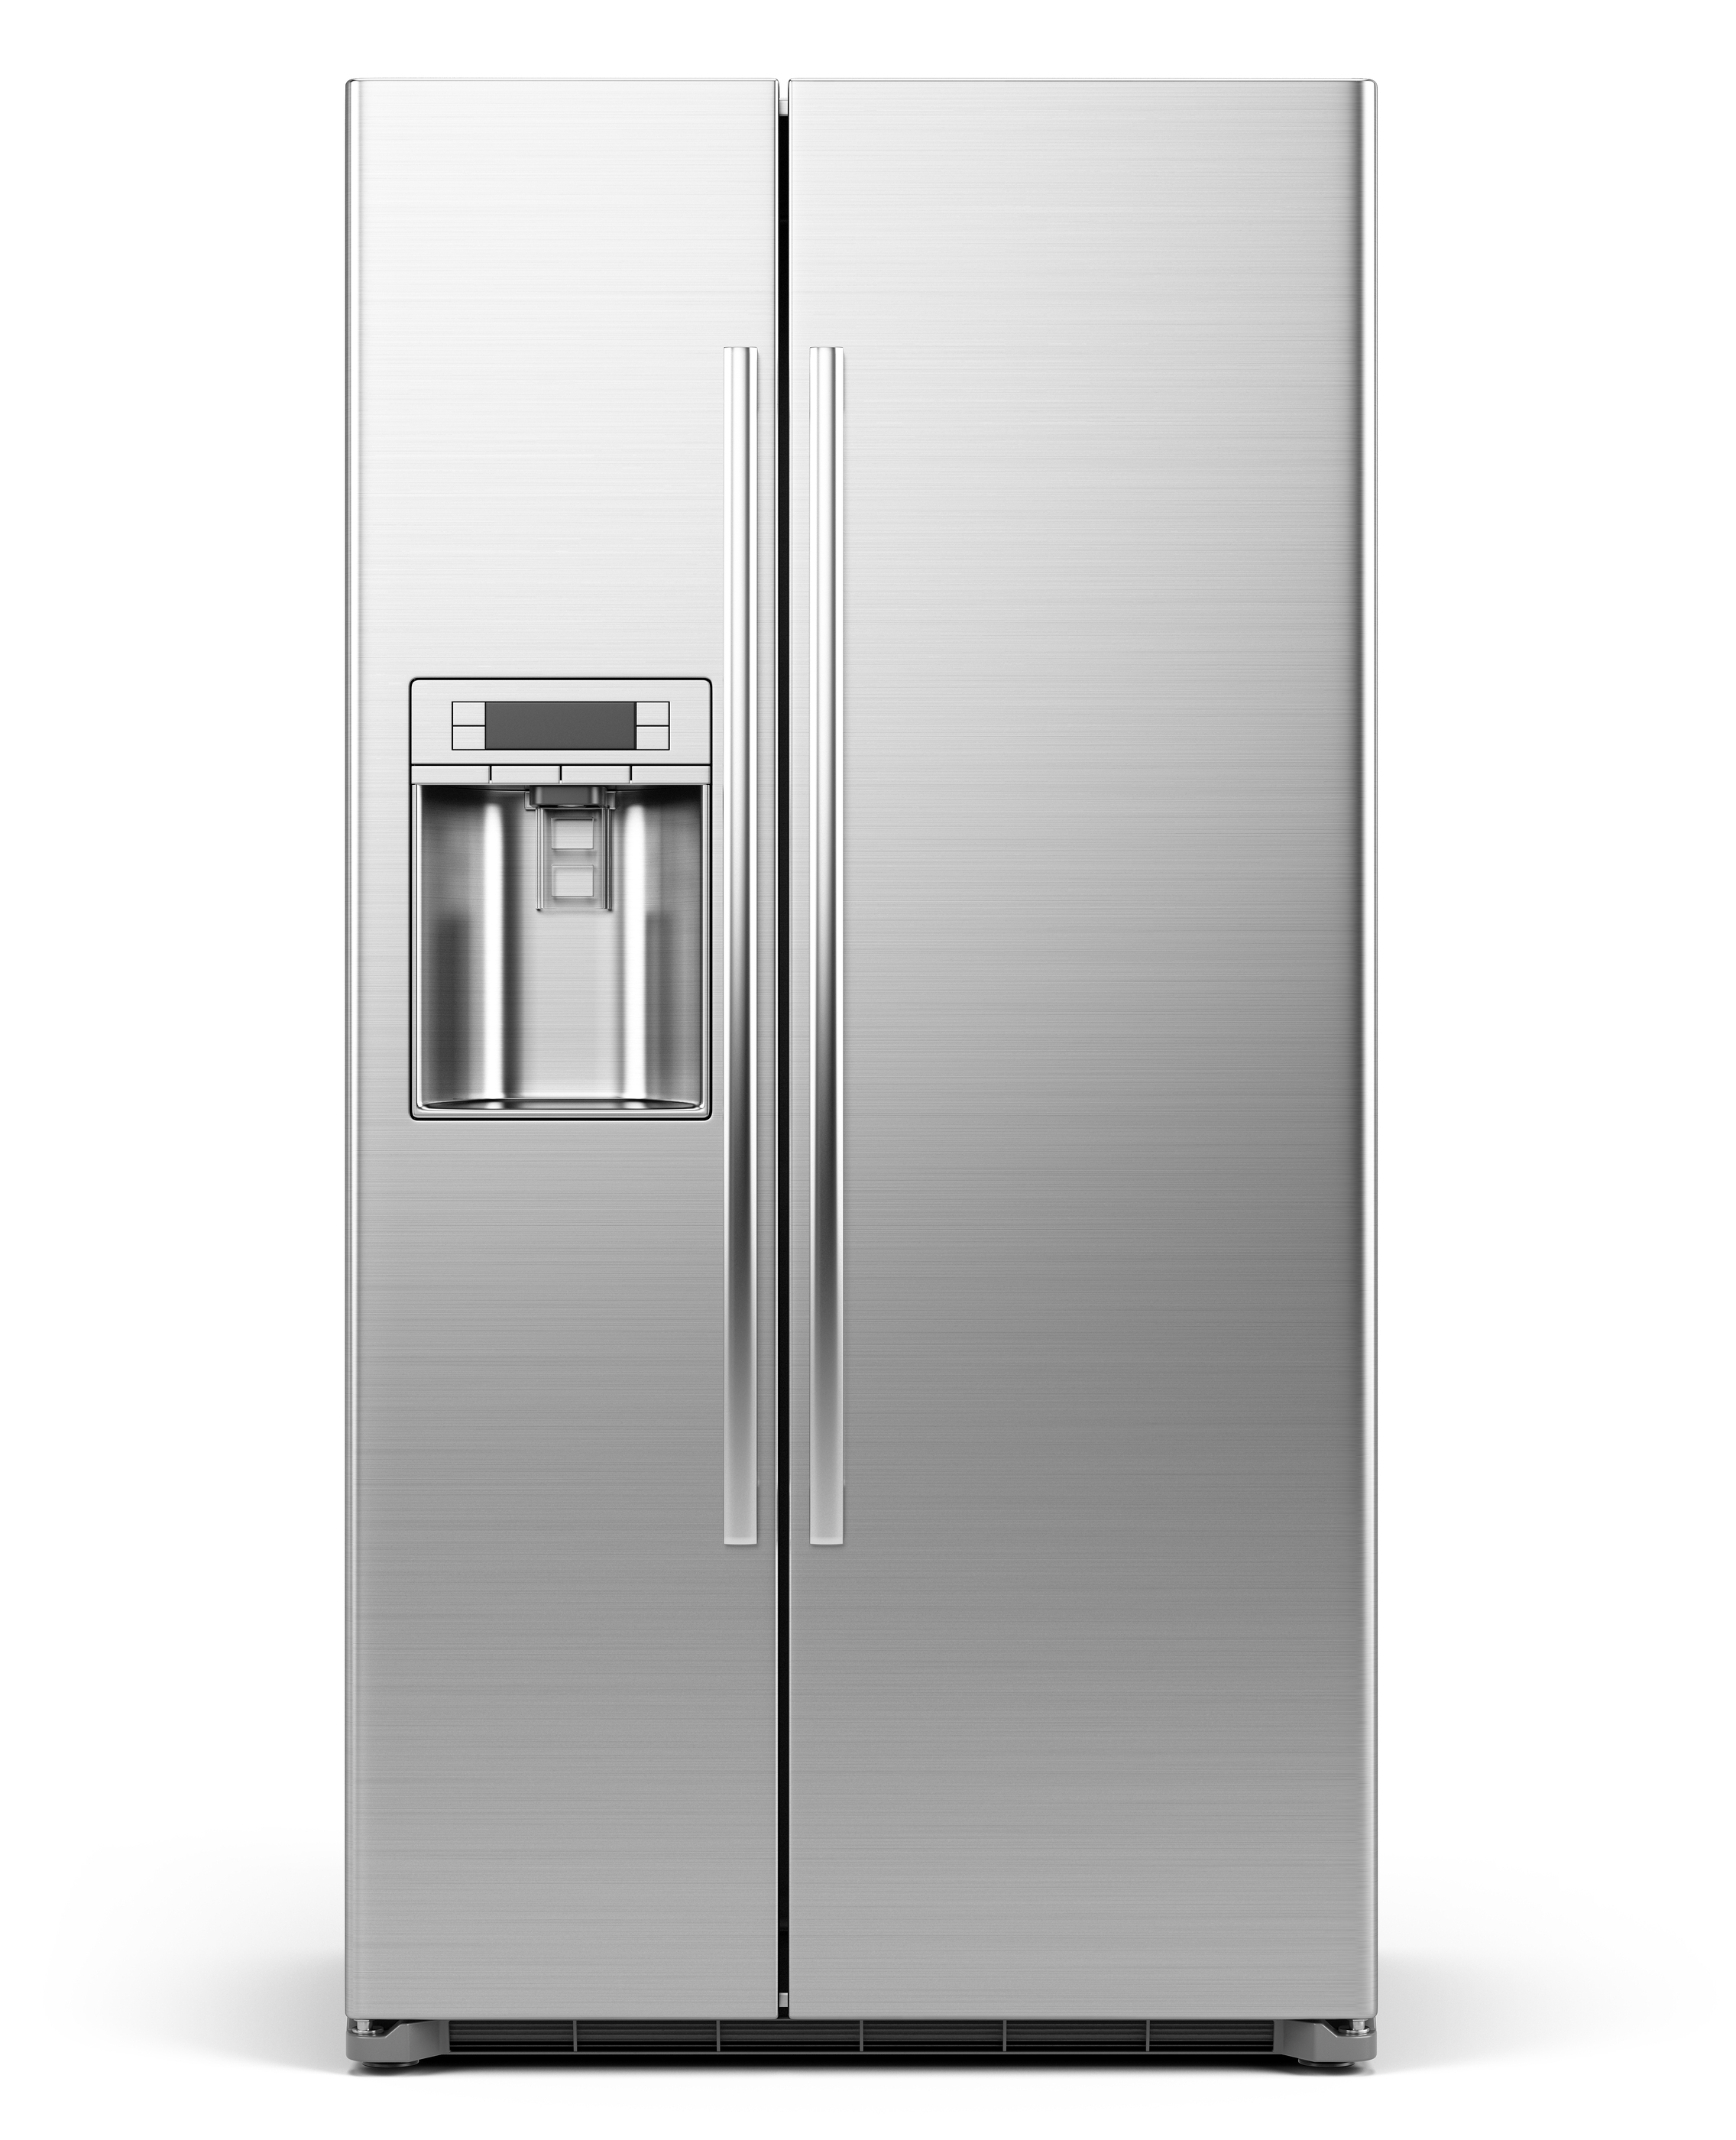 Front View of Modern side by side Stainless Steel Refrigerator .